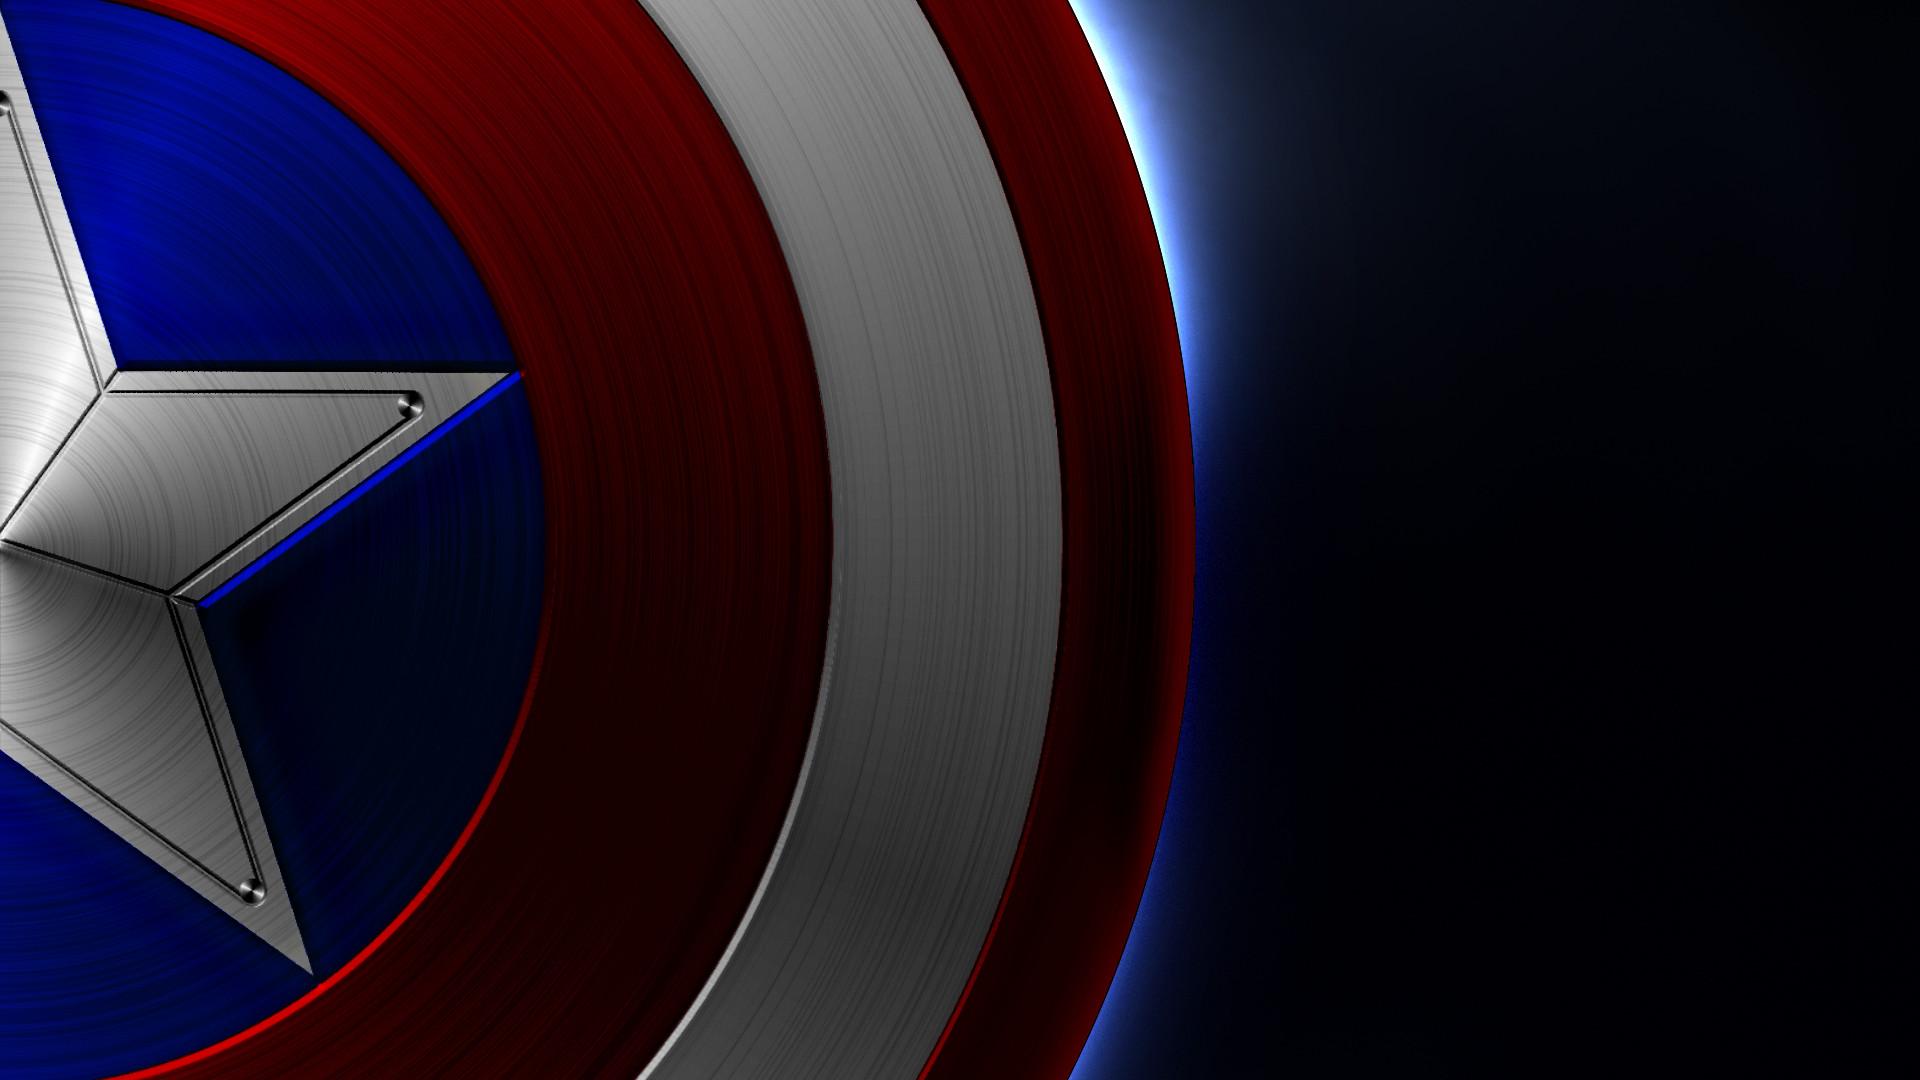 Captain America: Captain America Logo Wallpaper Android